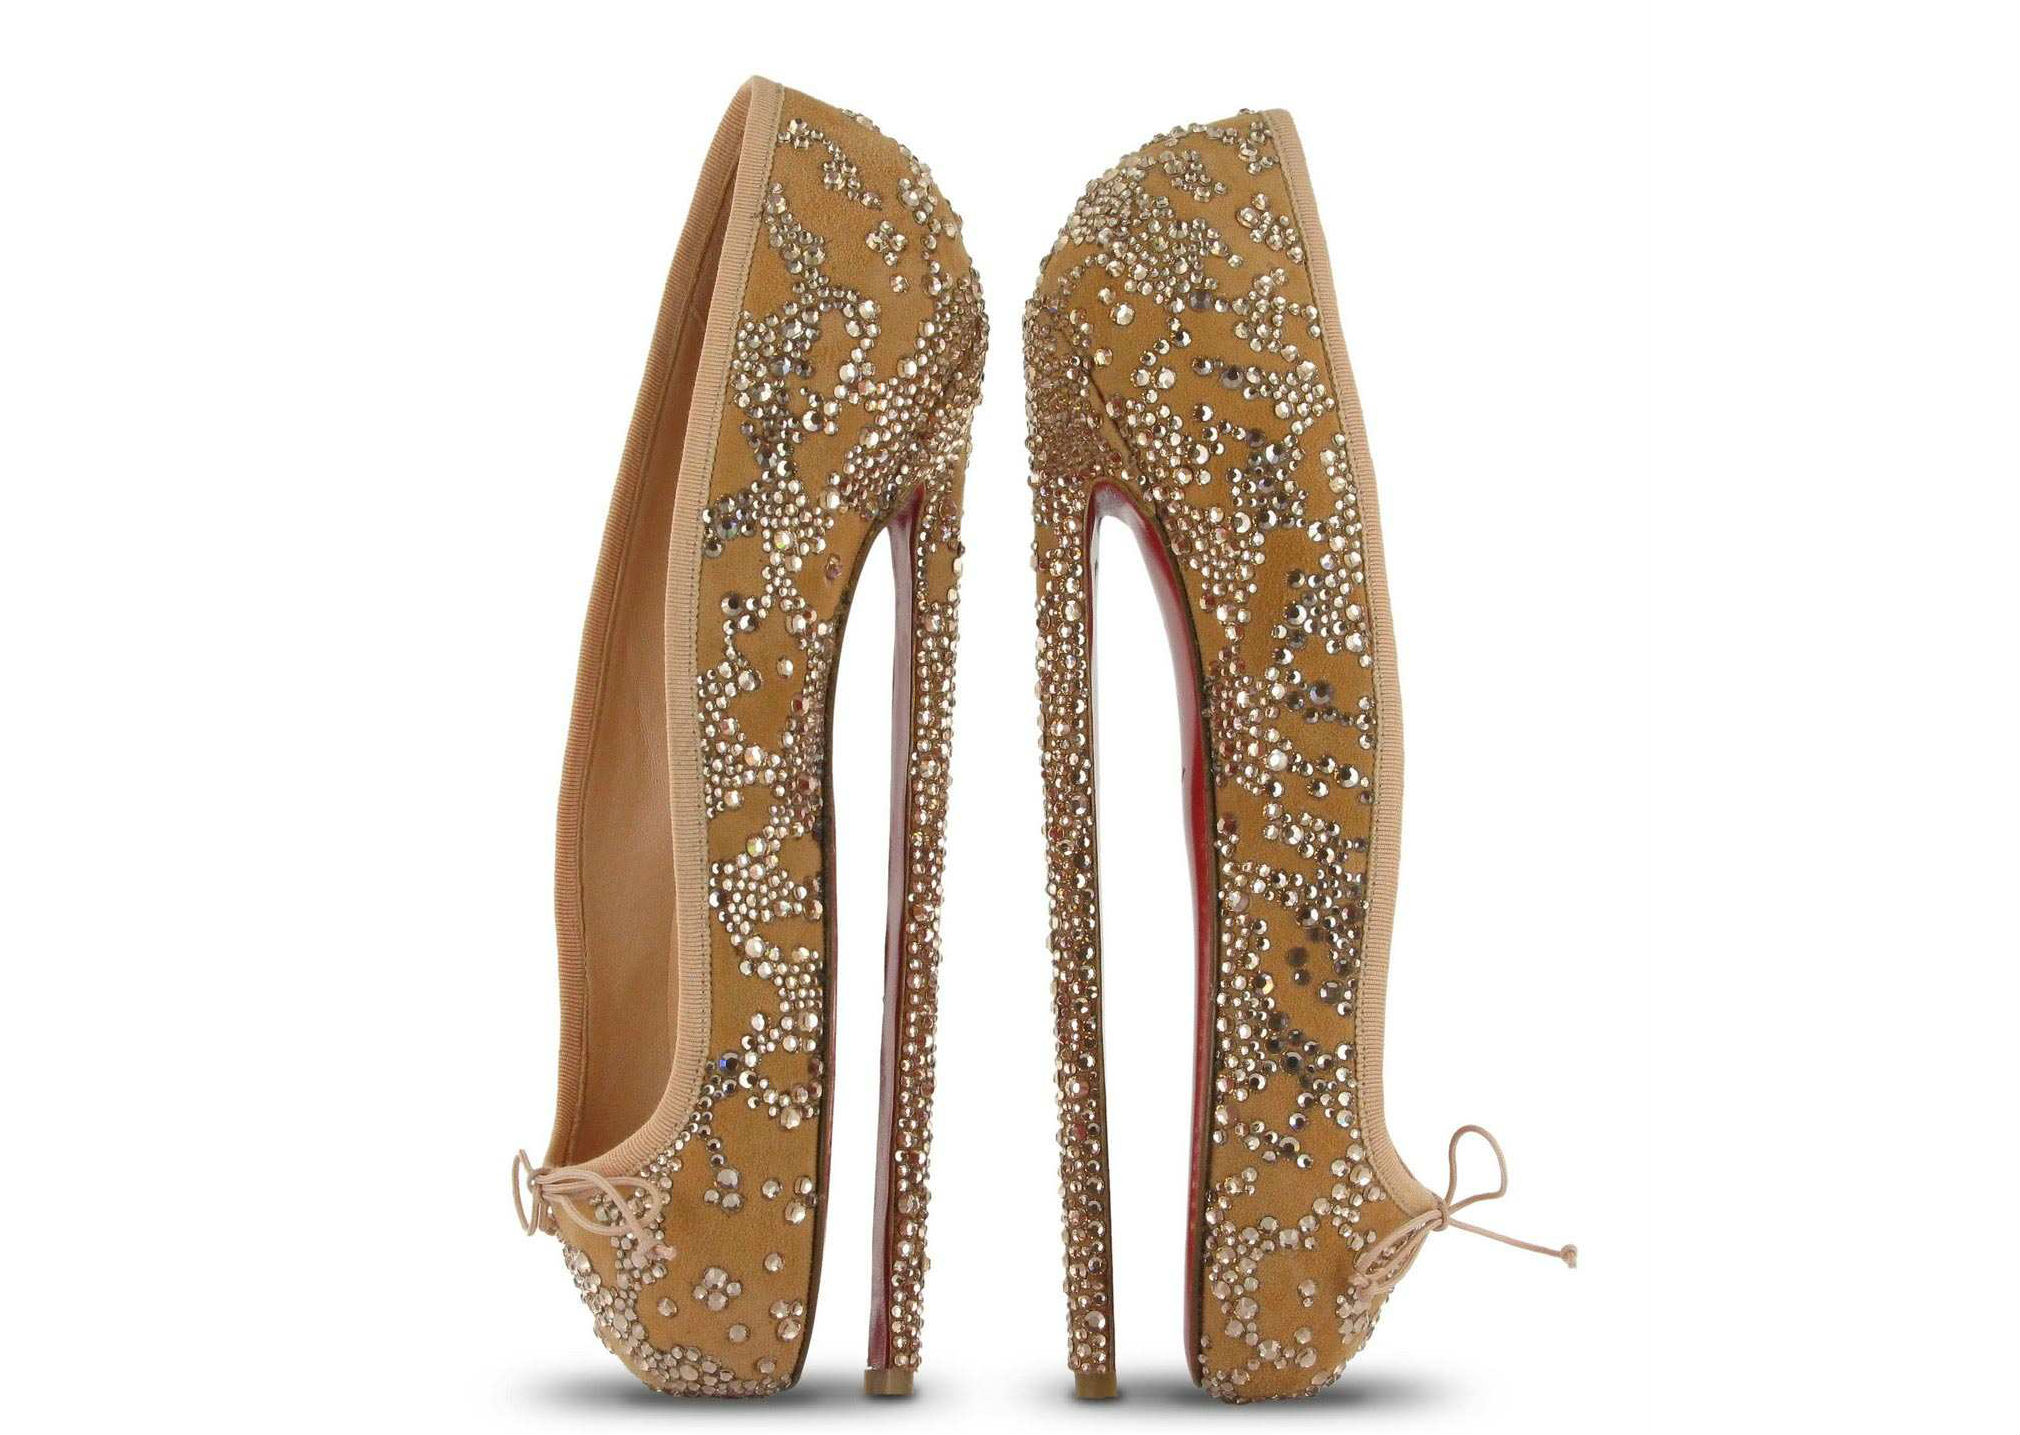 10. It's hard to imagine that even real ballerinas could walk in this shoe. It's completely vertical and looks like more of a torture device than an elegant heel. We'd all probably cramp up every 5 minutes, or just break our foot.